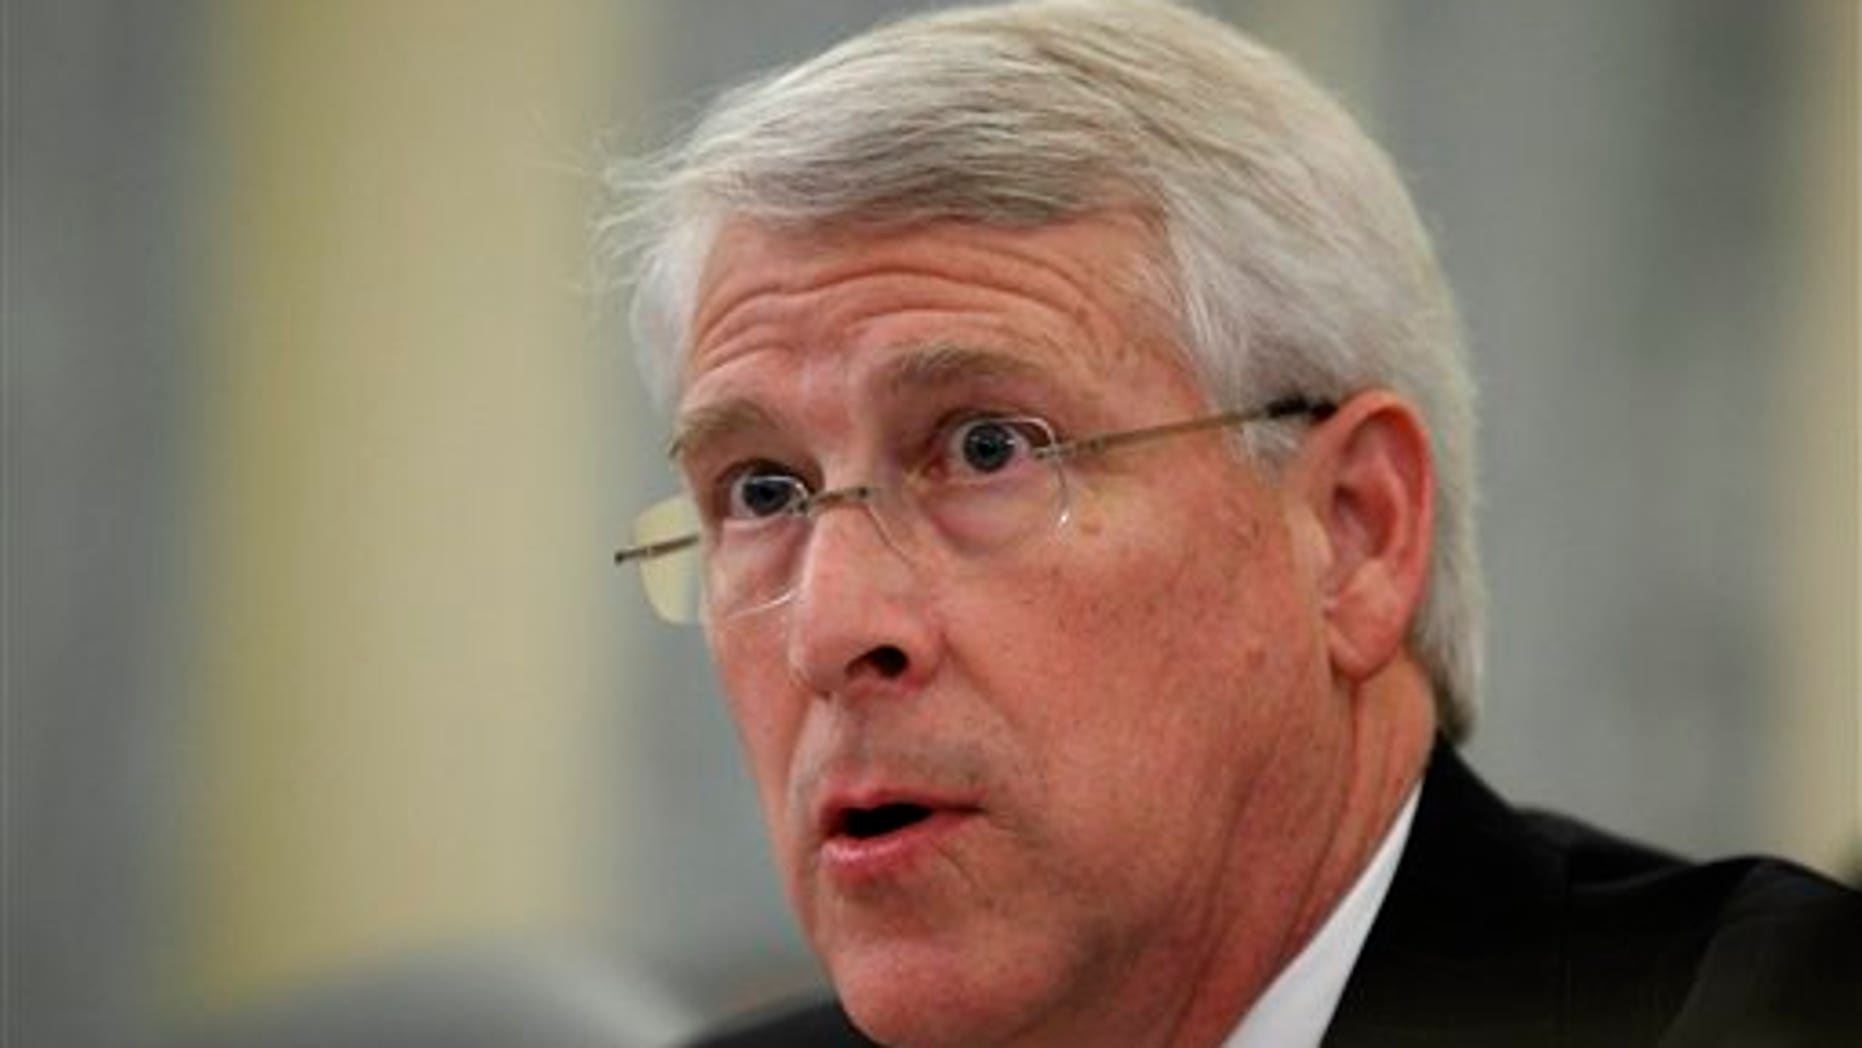 Senate Commerce Committee member Sen. Roger Wicker, R-Miss., questions witnesses on Capitol Hill in Washington, Tuesday, March 2, 2010, during the committee's hearing on Toyota. (AP Photo/Manuel Balce Ceneta)